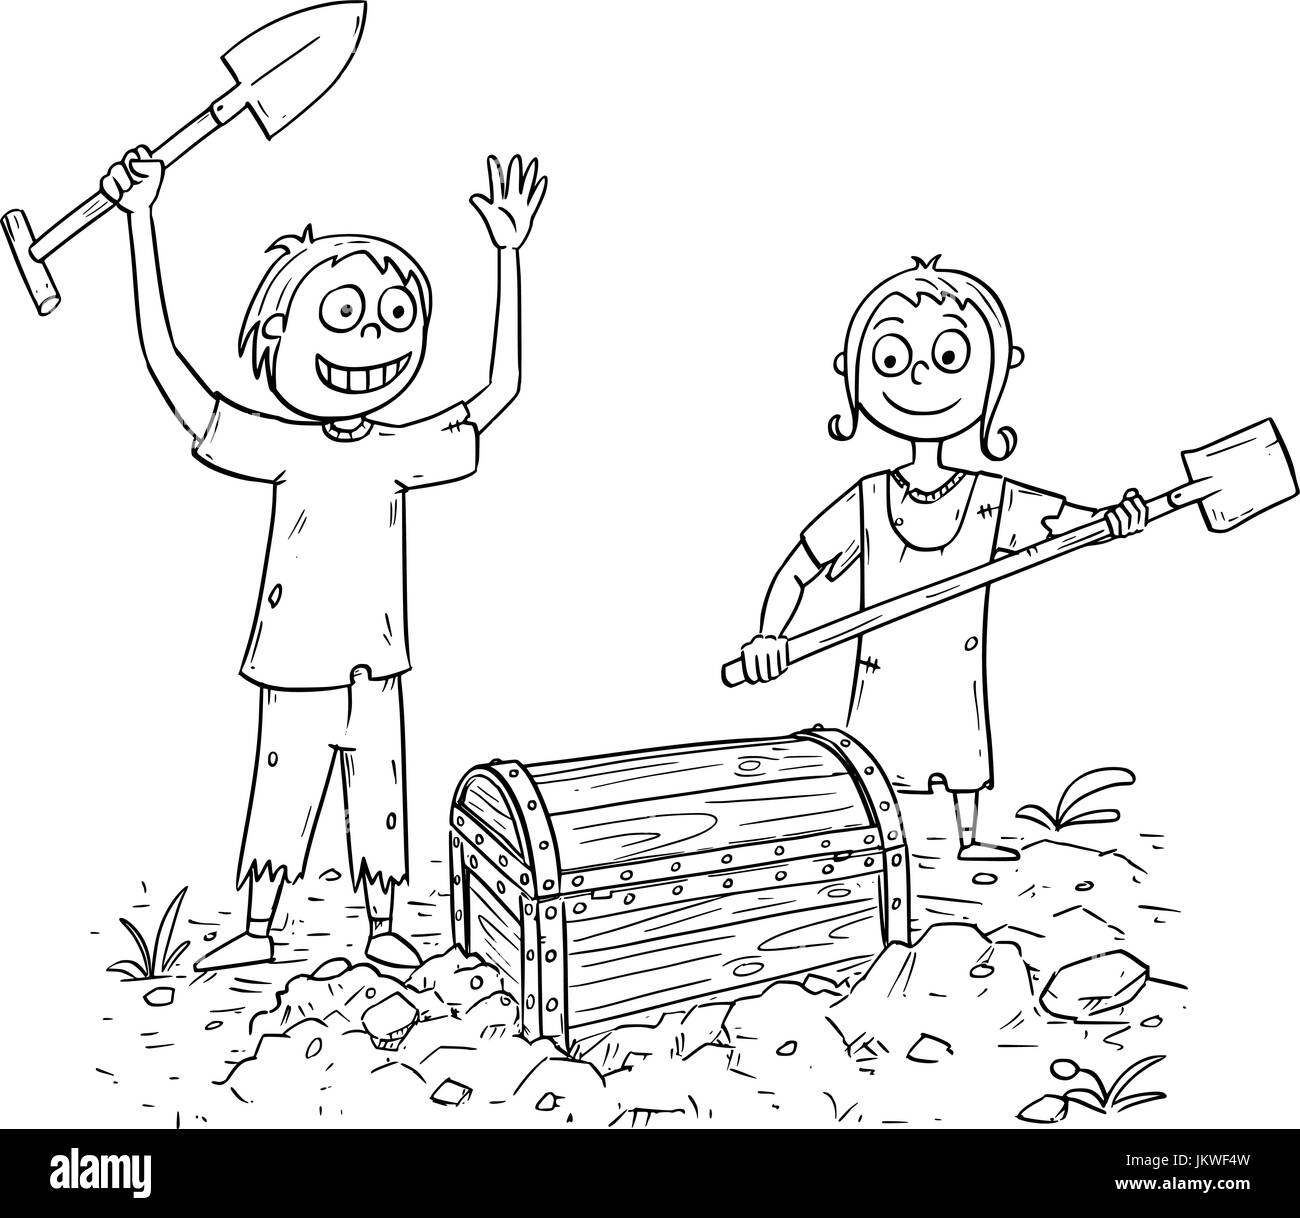 Hand drawing illustration of happy boy and girl who found pirate treasure chest. - Stock Image